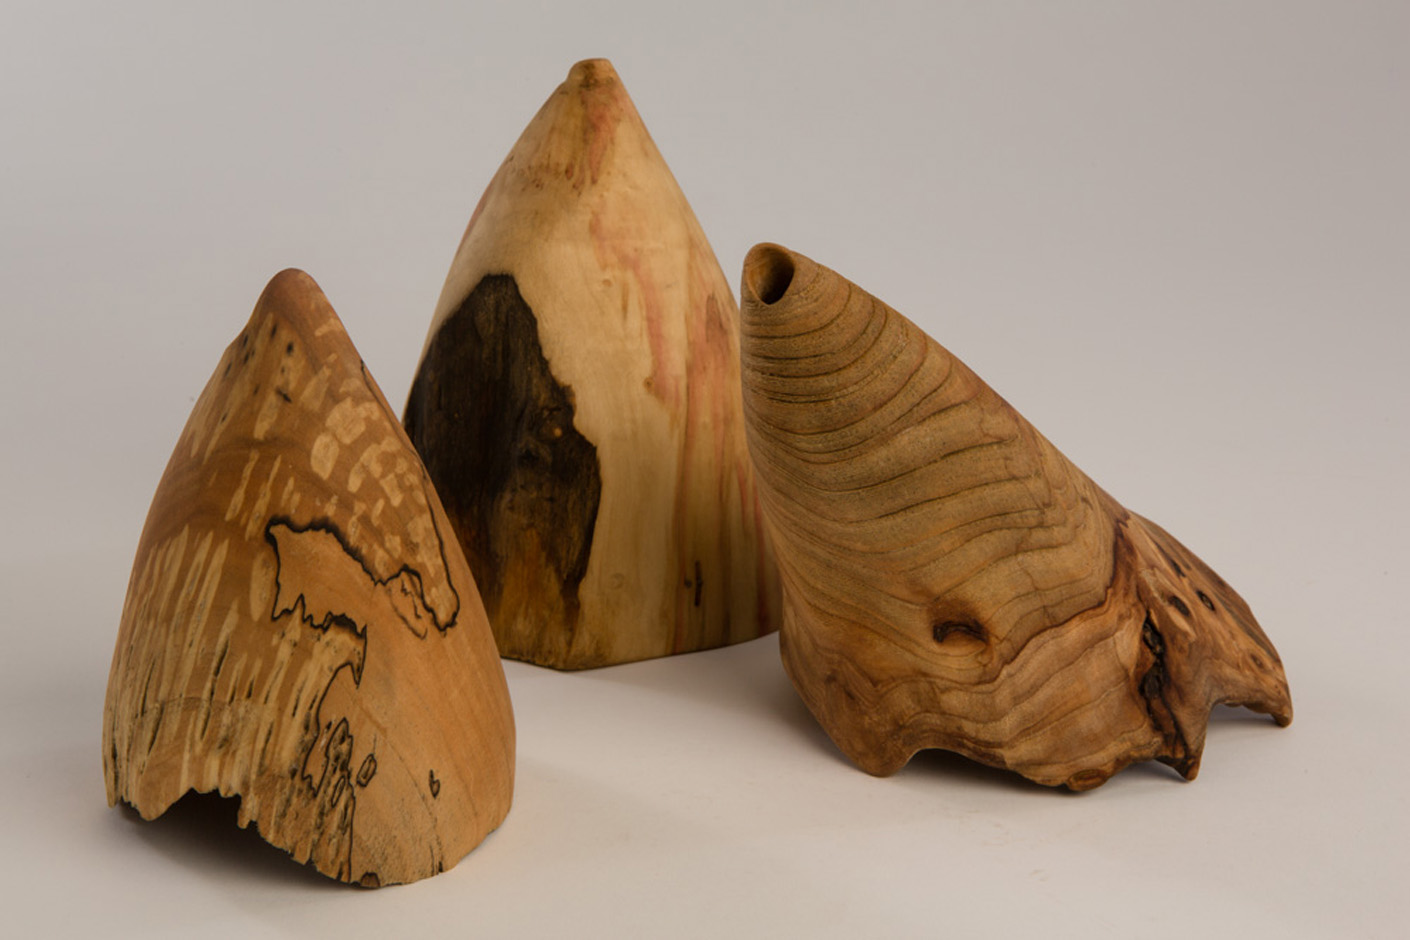 "L-R, The Beak, Maple, beeswax. linseed oil, 4.25"" diameter x 6.75"" high, Dark Front, Box Elder, beeswax. linseed oil, 4"" diameter x 7"" high, and Elmo. Elm, beeswax. linseed oil, 5.5"" diameter x 8.75"" high Photography: Stacey Evans"